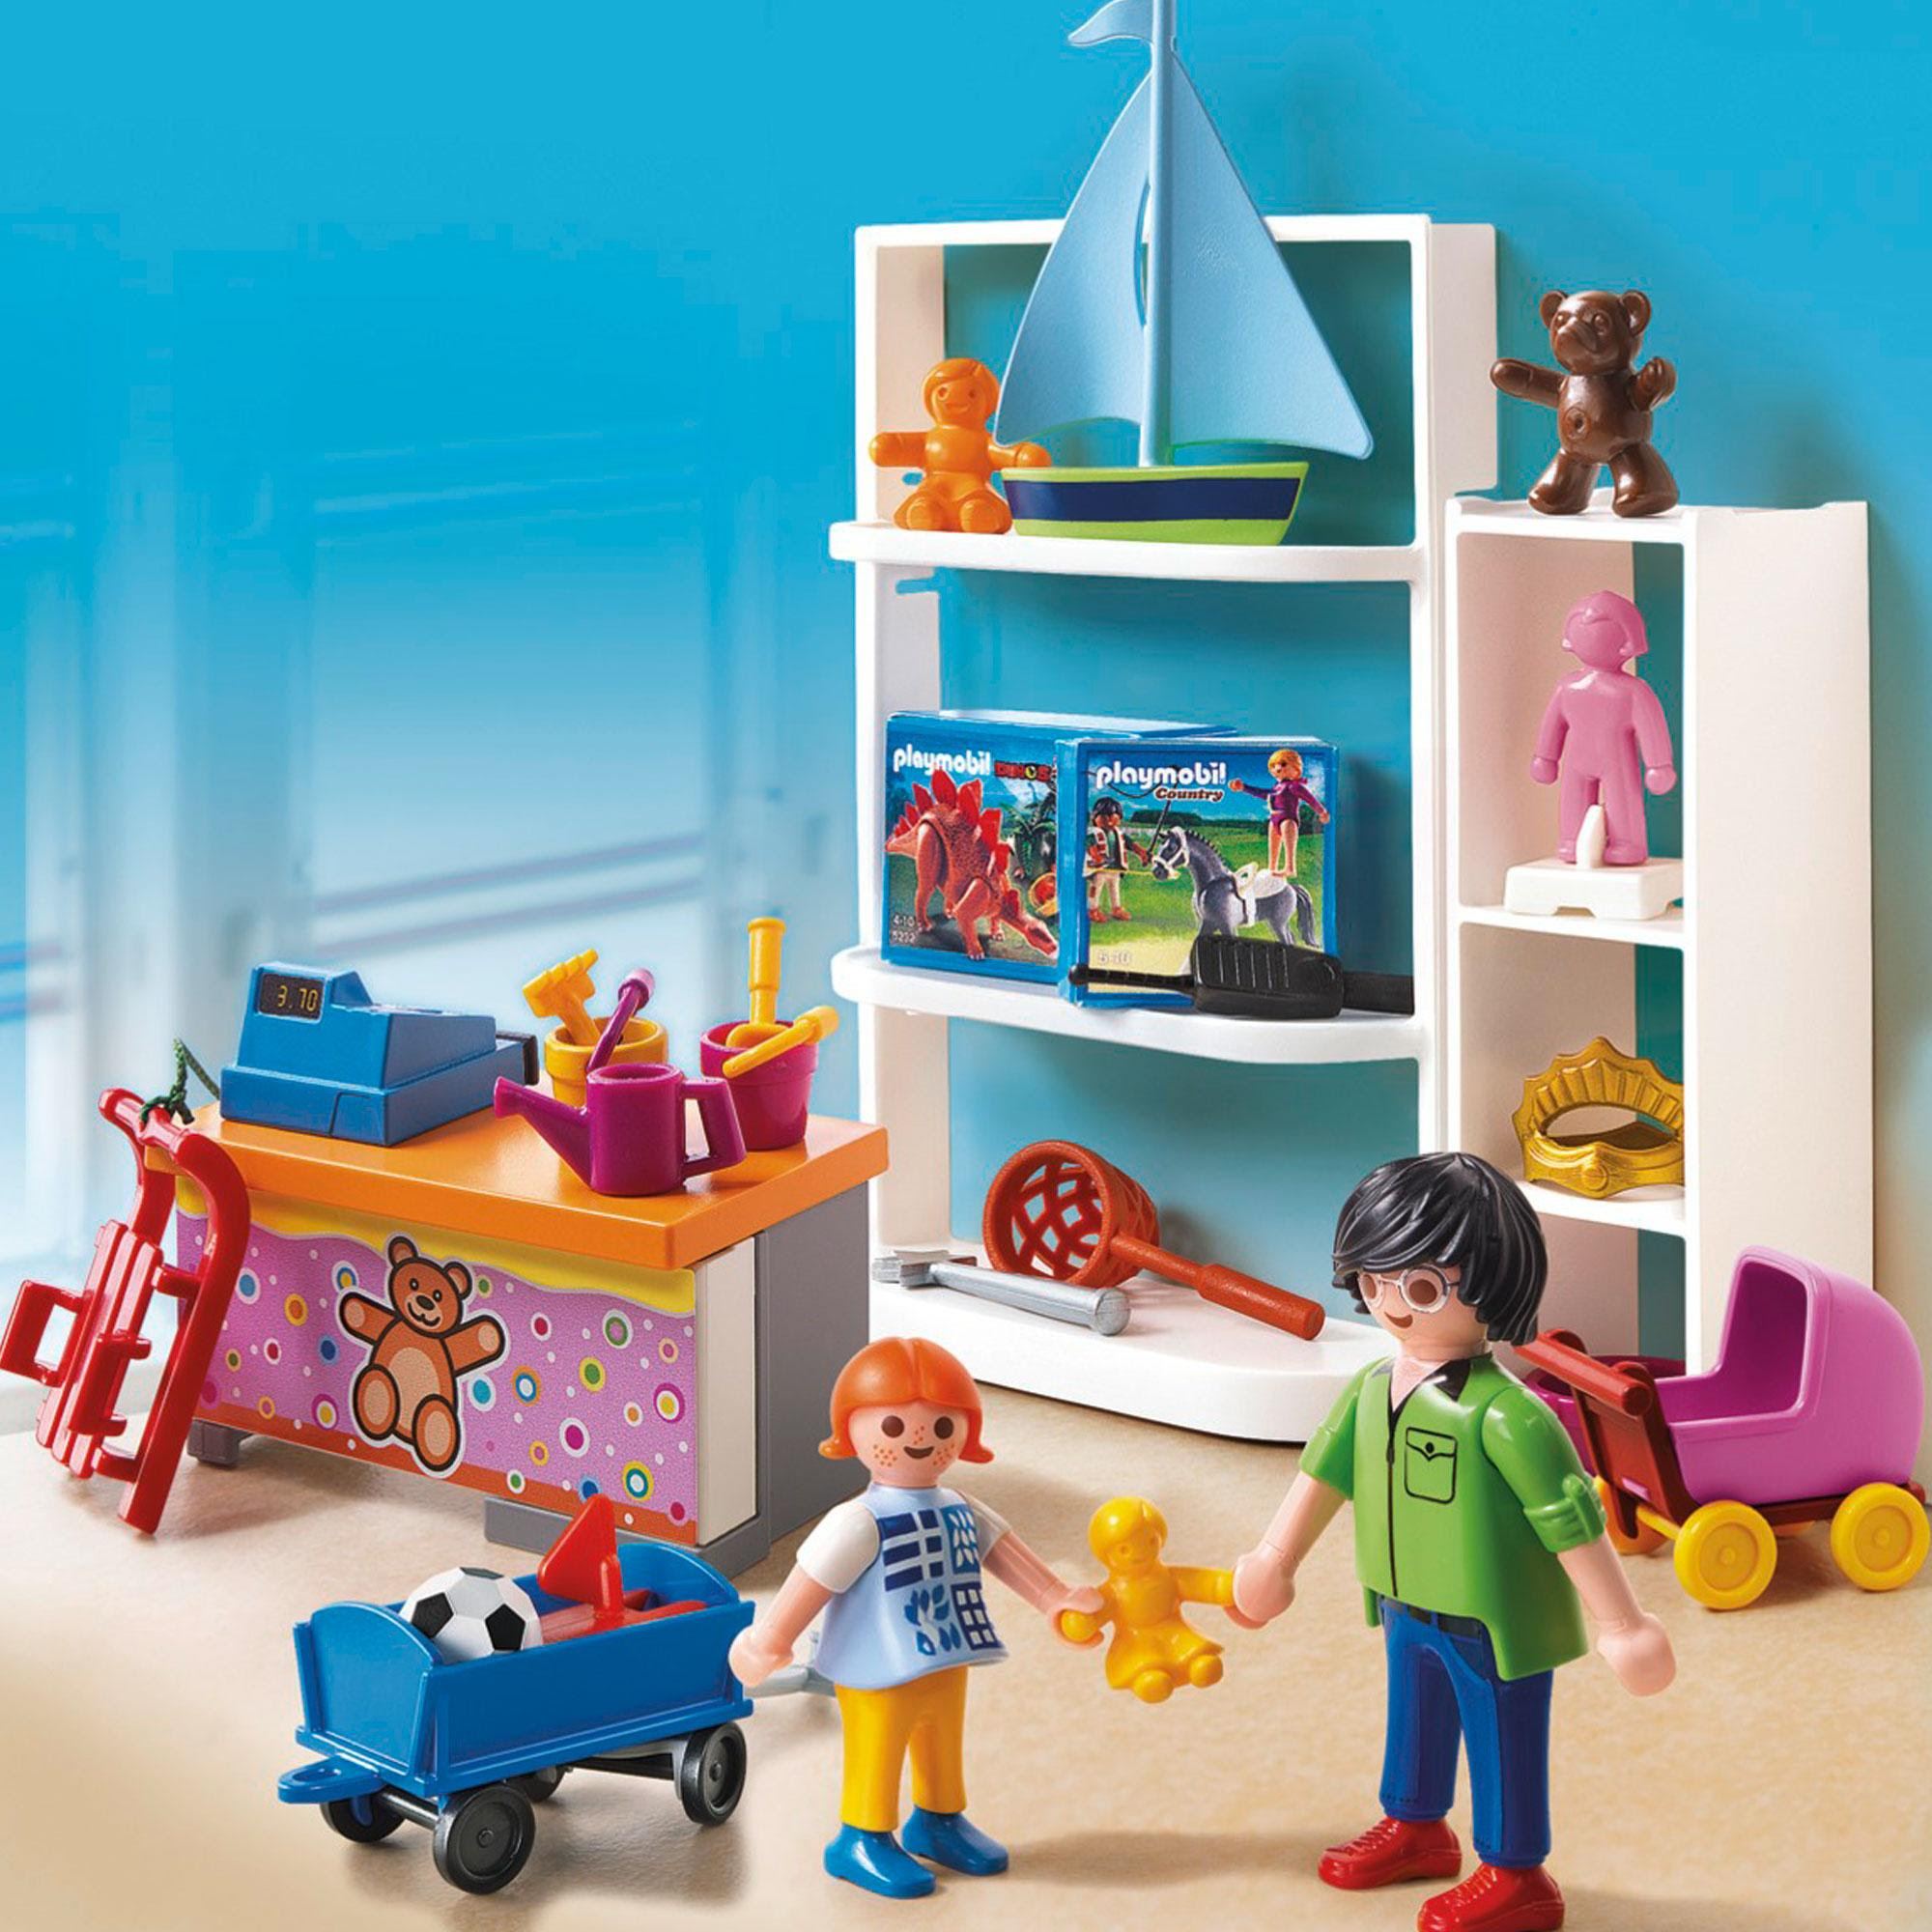 Playmobil City Life Toy Shop